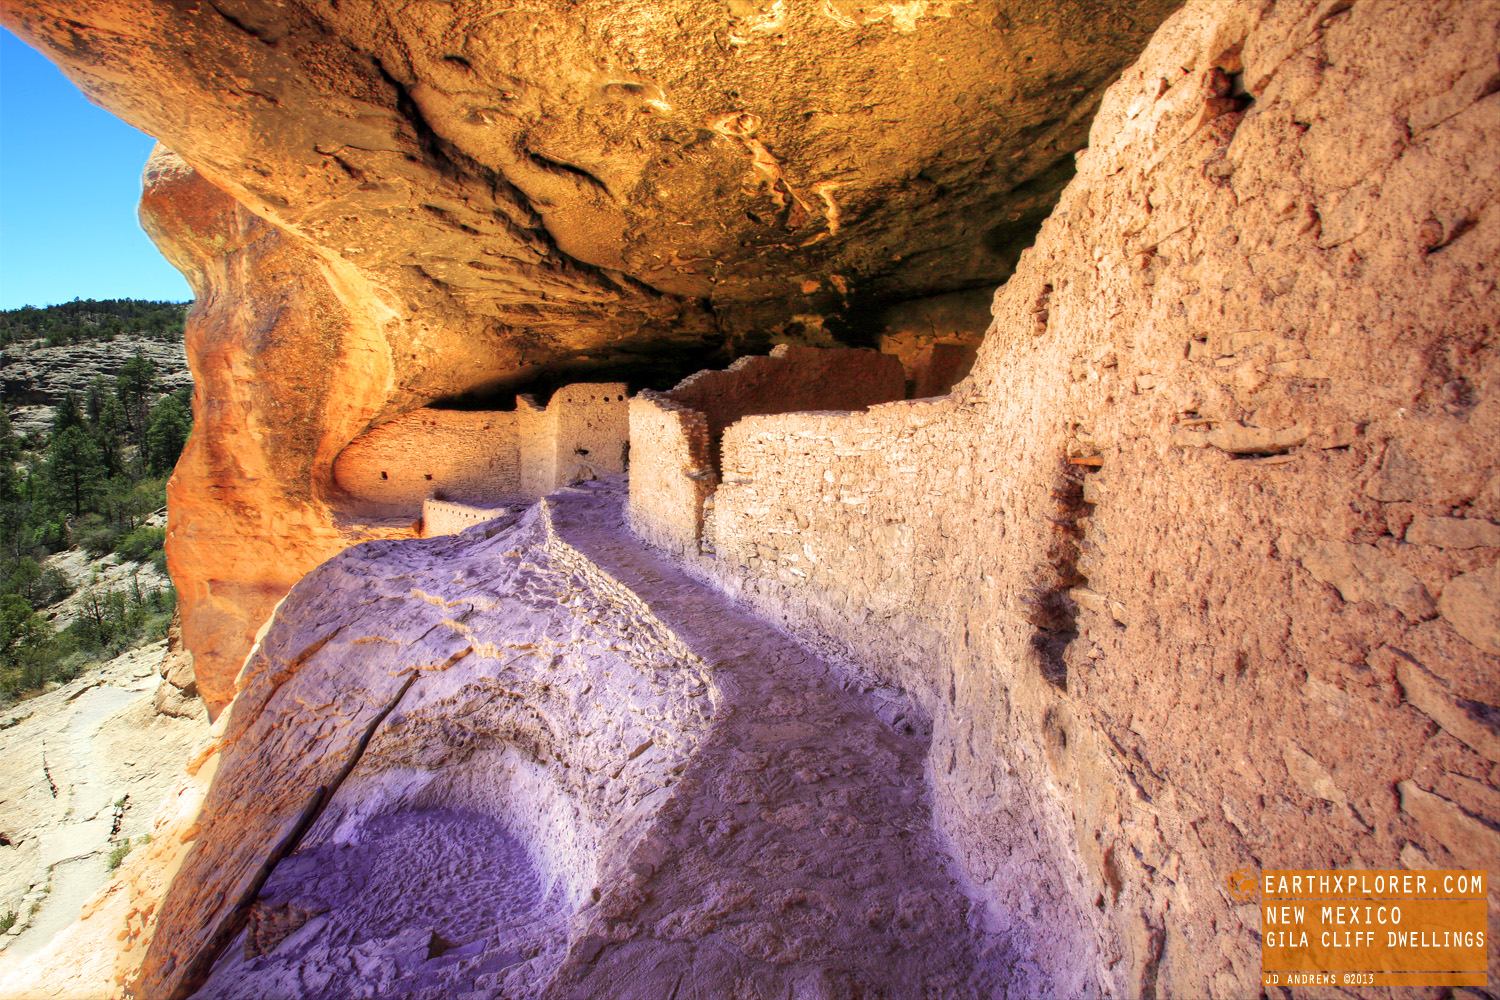 Come eXplore these five natural caves, created over thousands of years, located in Cliff Dweller Canyon.